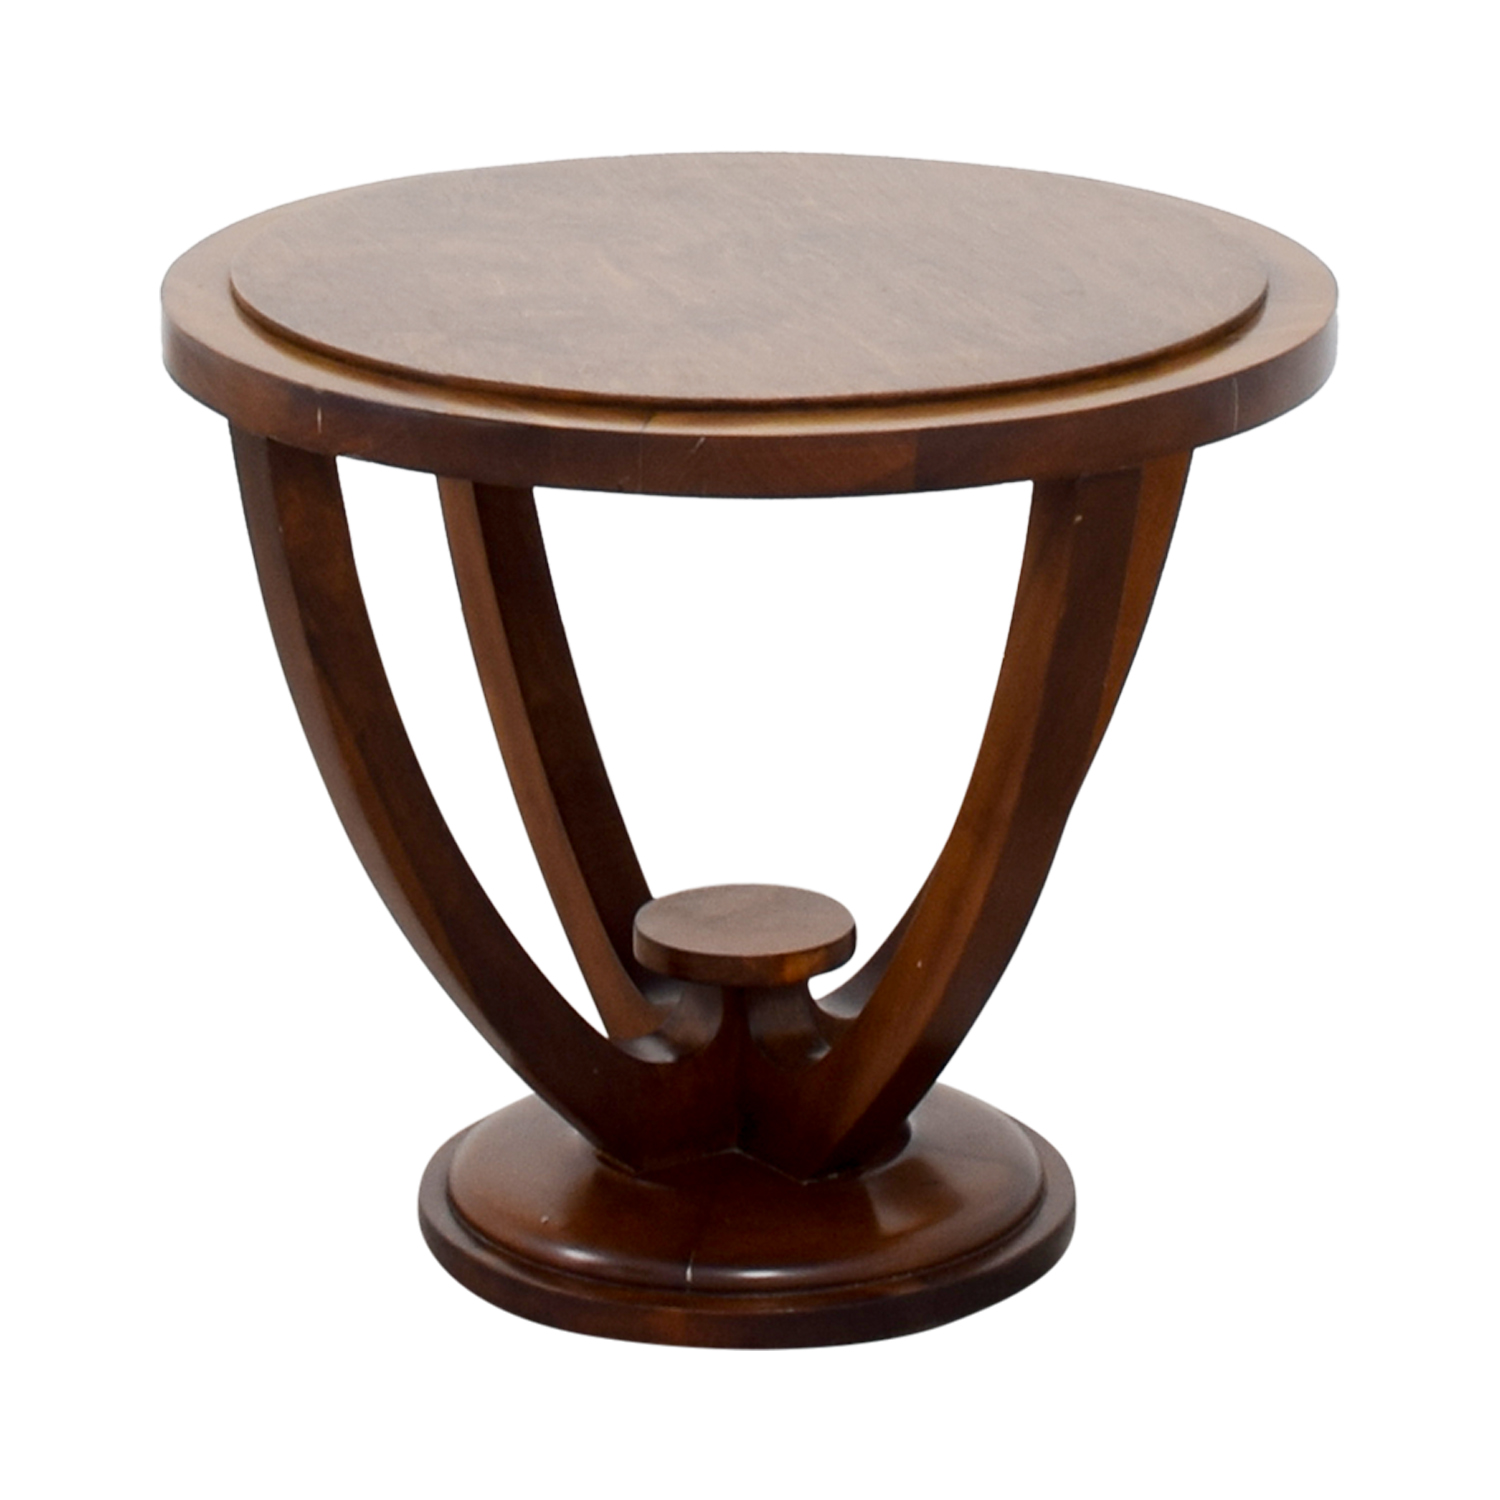 shop Furniture Masters Round Wood End Table Furniture Masters End Tables